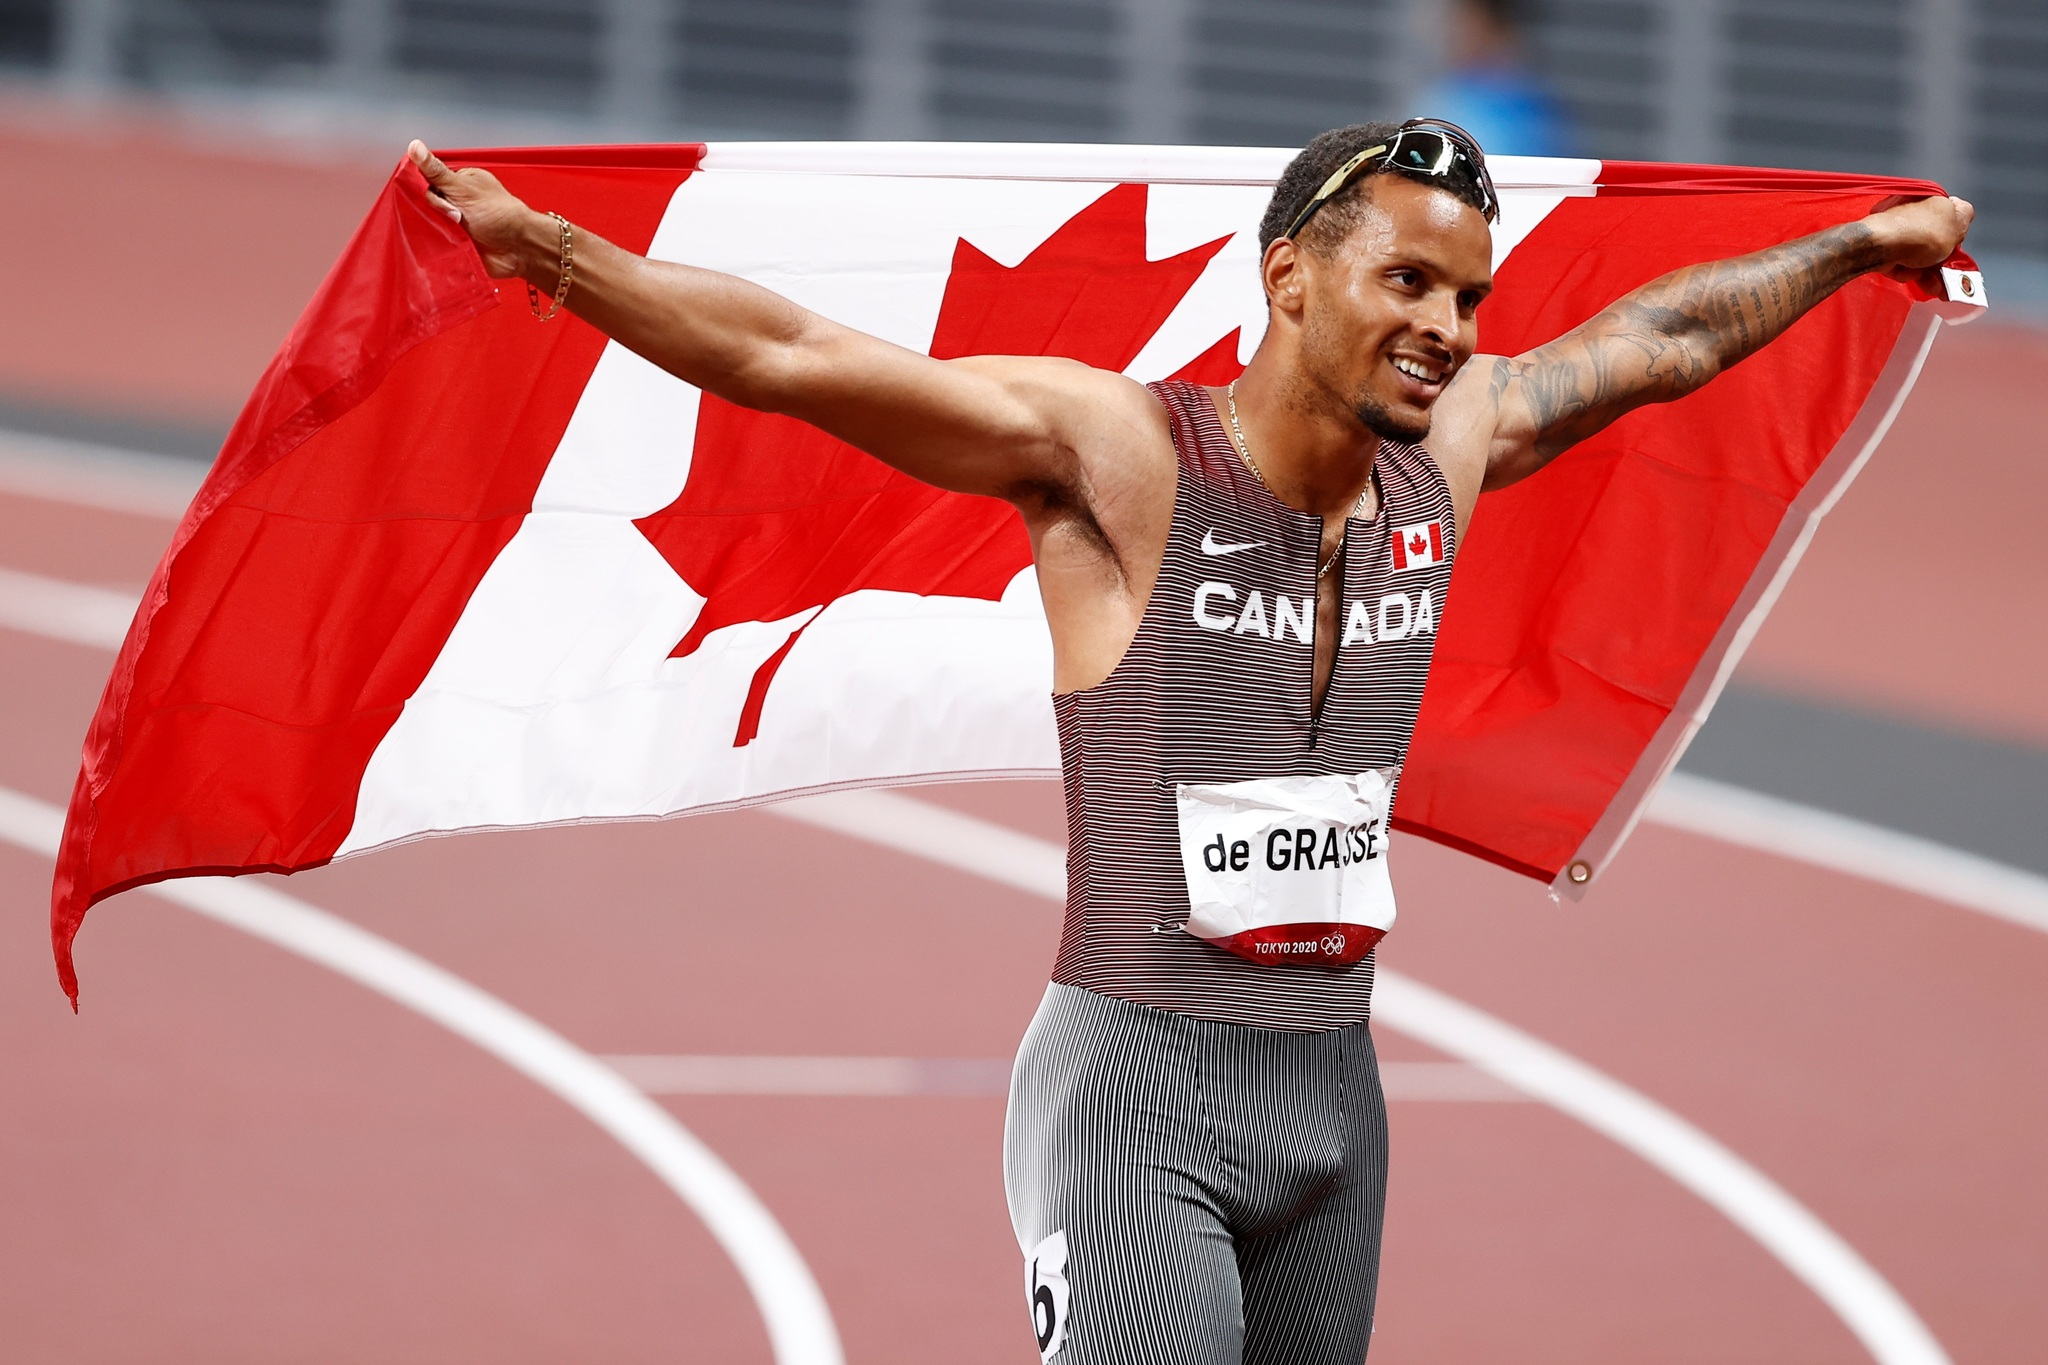 Andre De Grasse celebrates with Canada's flag after winning the men's 200m race.